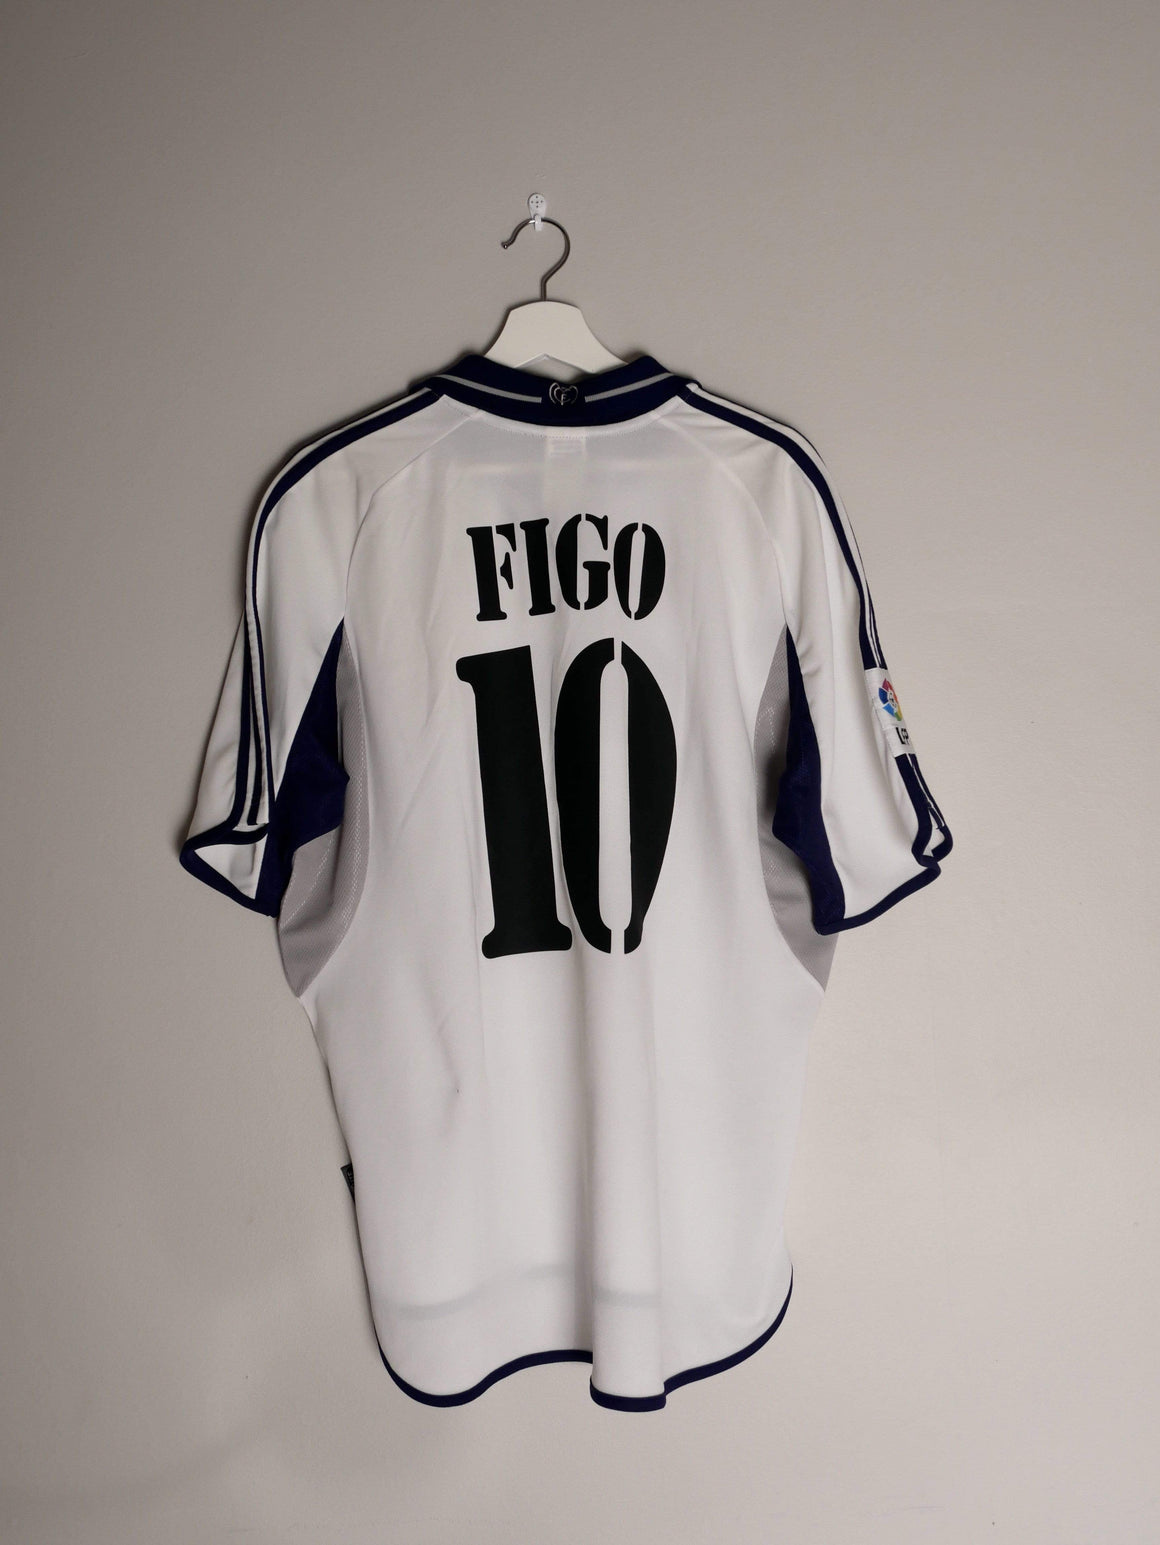 Football Shirt Collective 2000-01 Real Madrid home football shirt L #10 Figo